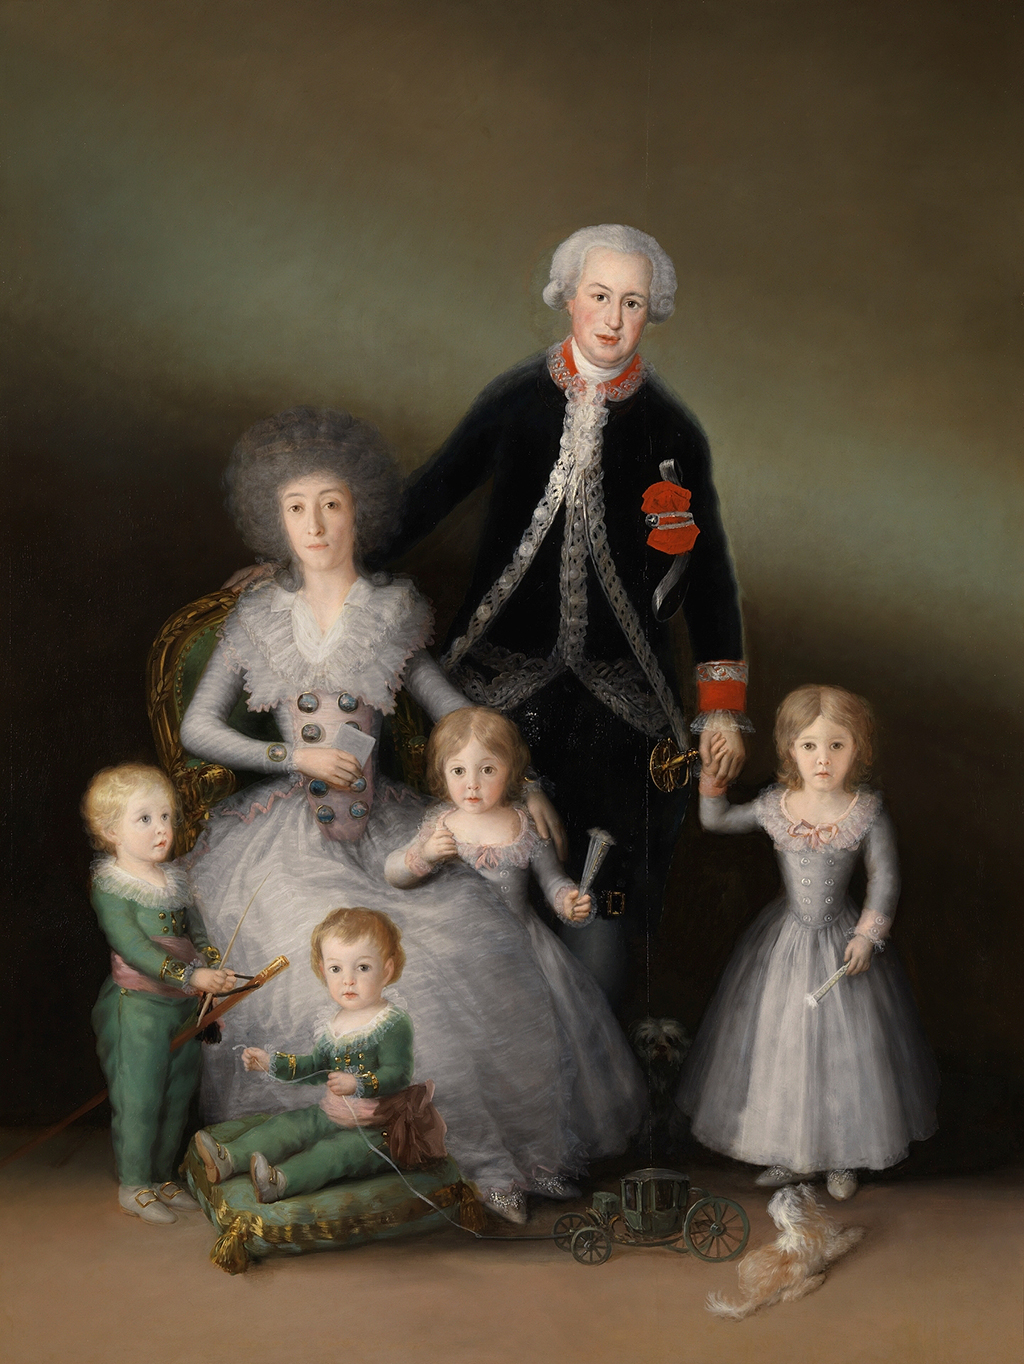 The Duke and Duchess of Osuna and their Children in Detail Francisco de Goya